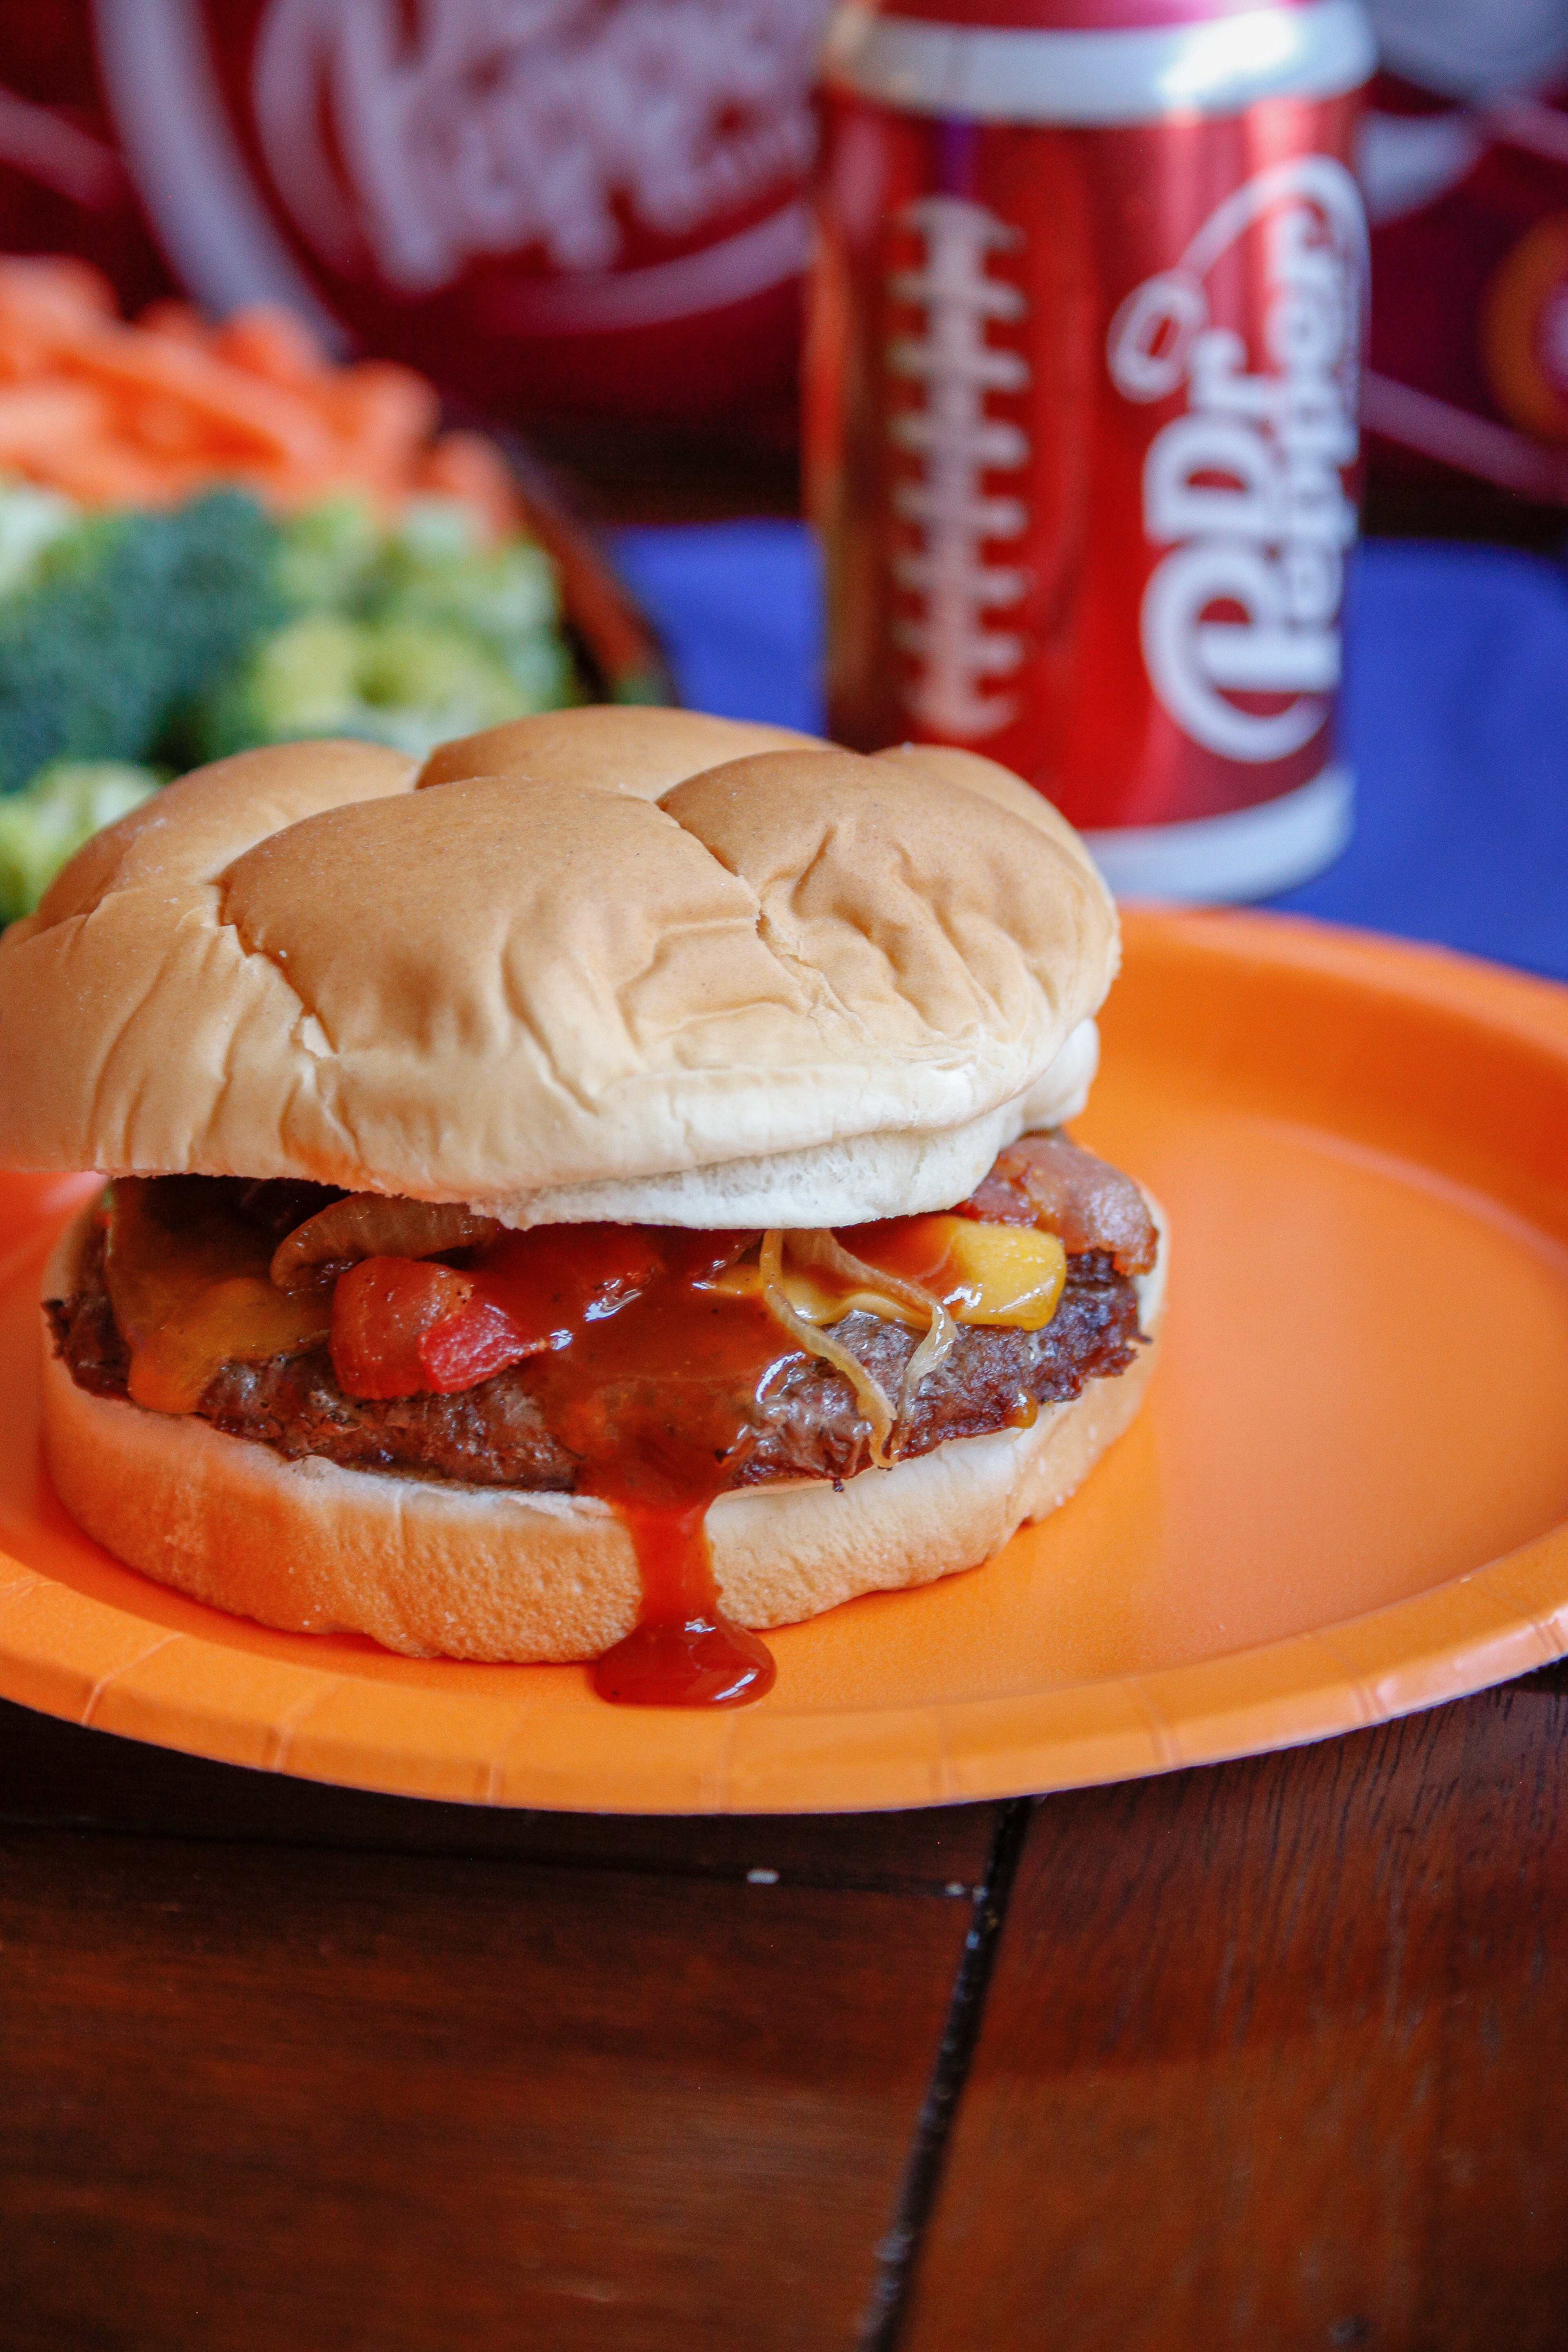 Throw the ultimate College Football homegating party with these fun ideas and a barbecue bacon cheeseburger recipe #FootballFanGame #FiredUpFans @drpepper @walmart @kingsford #ad